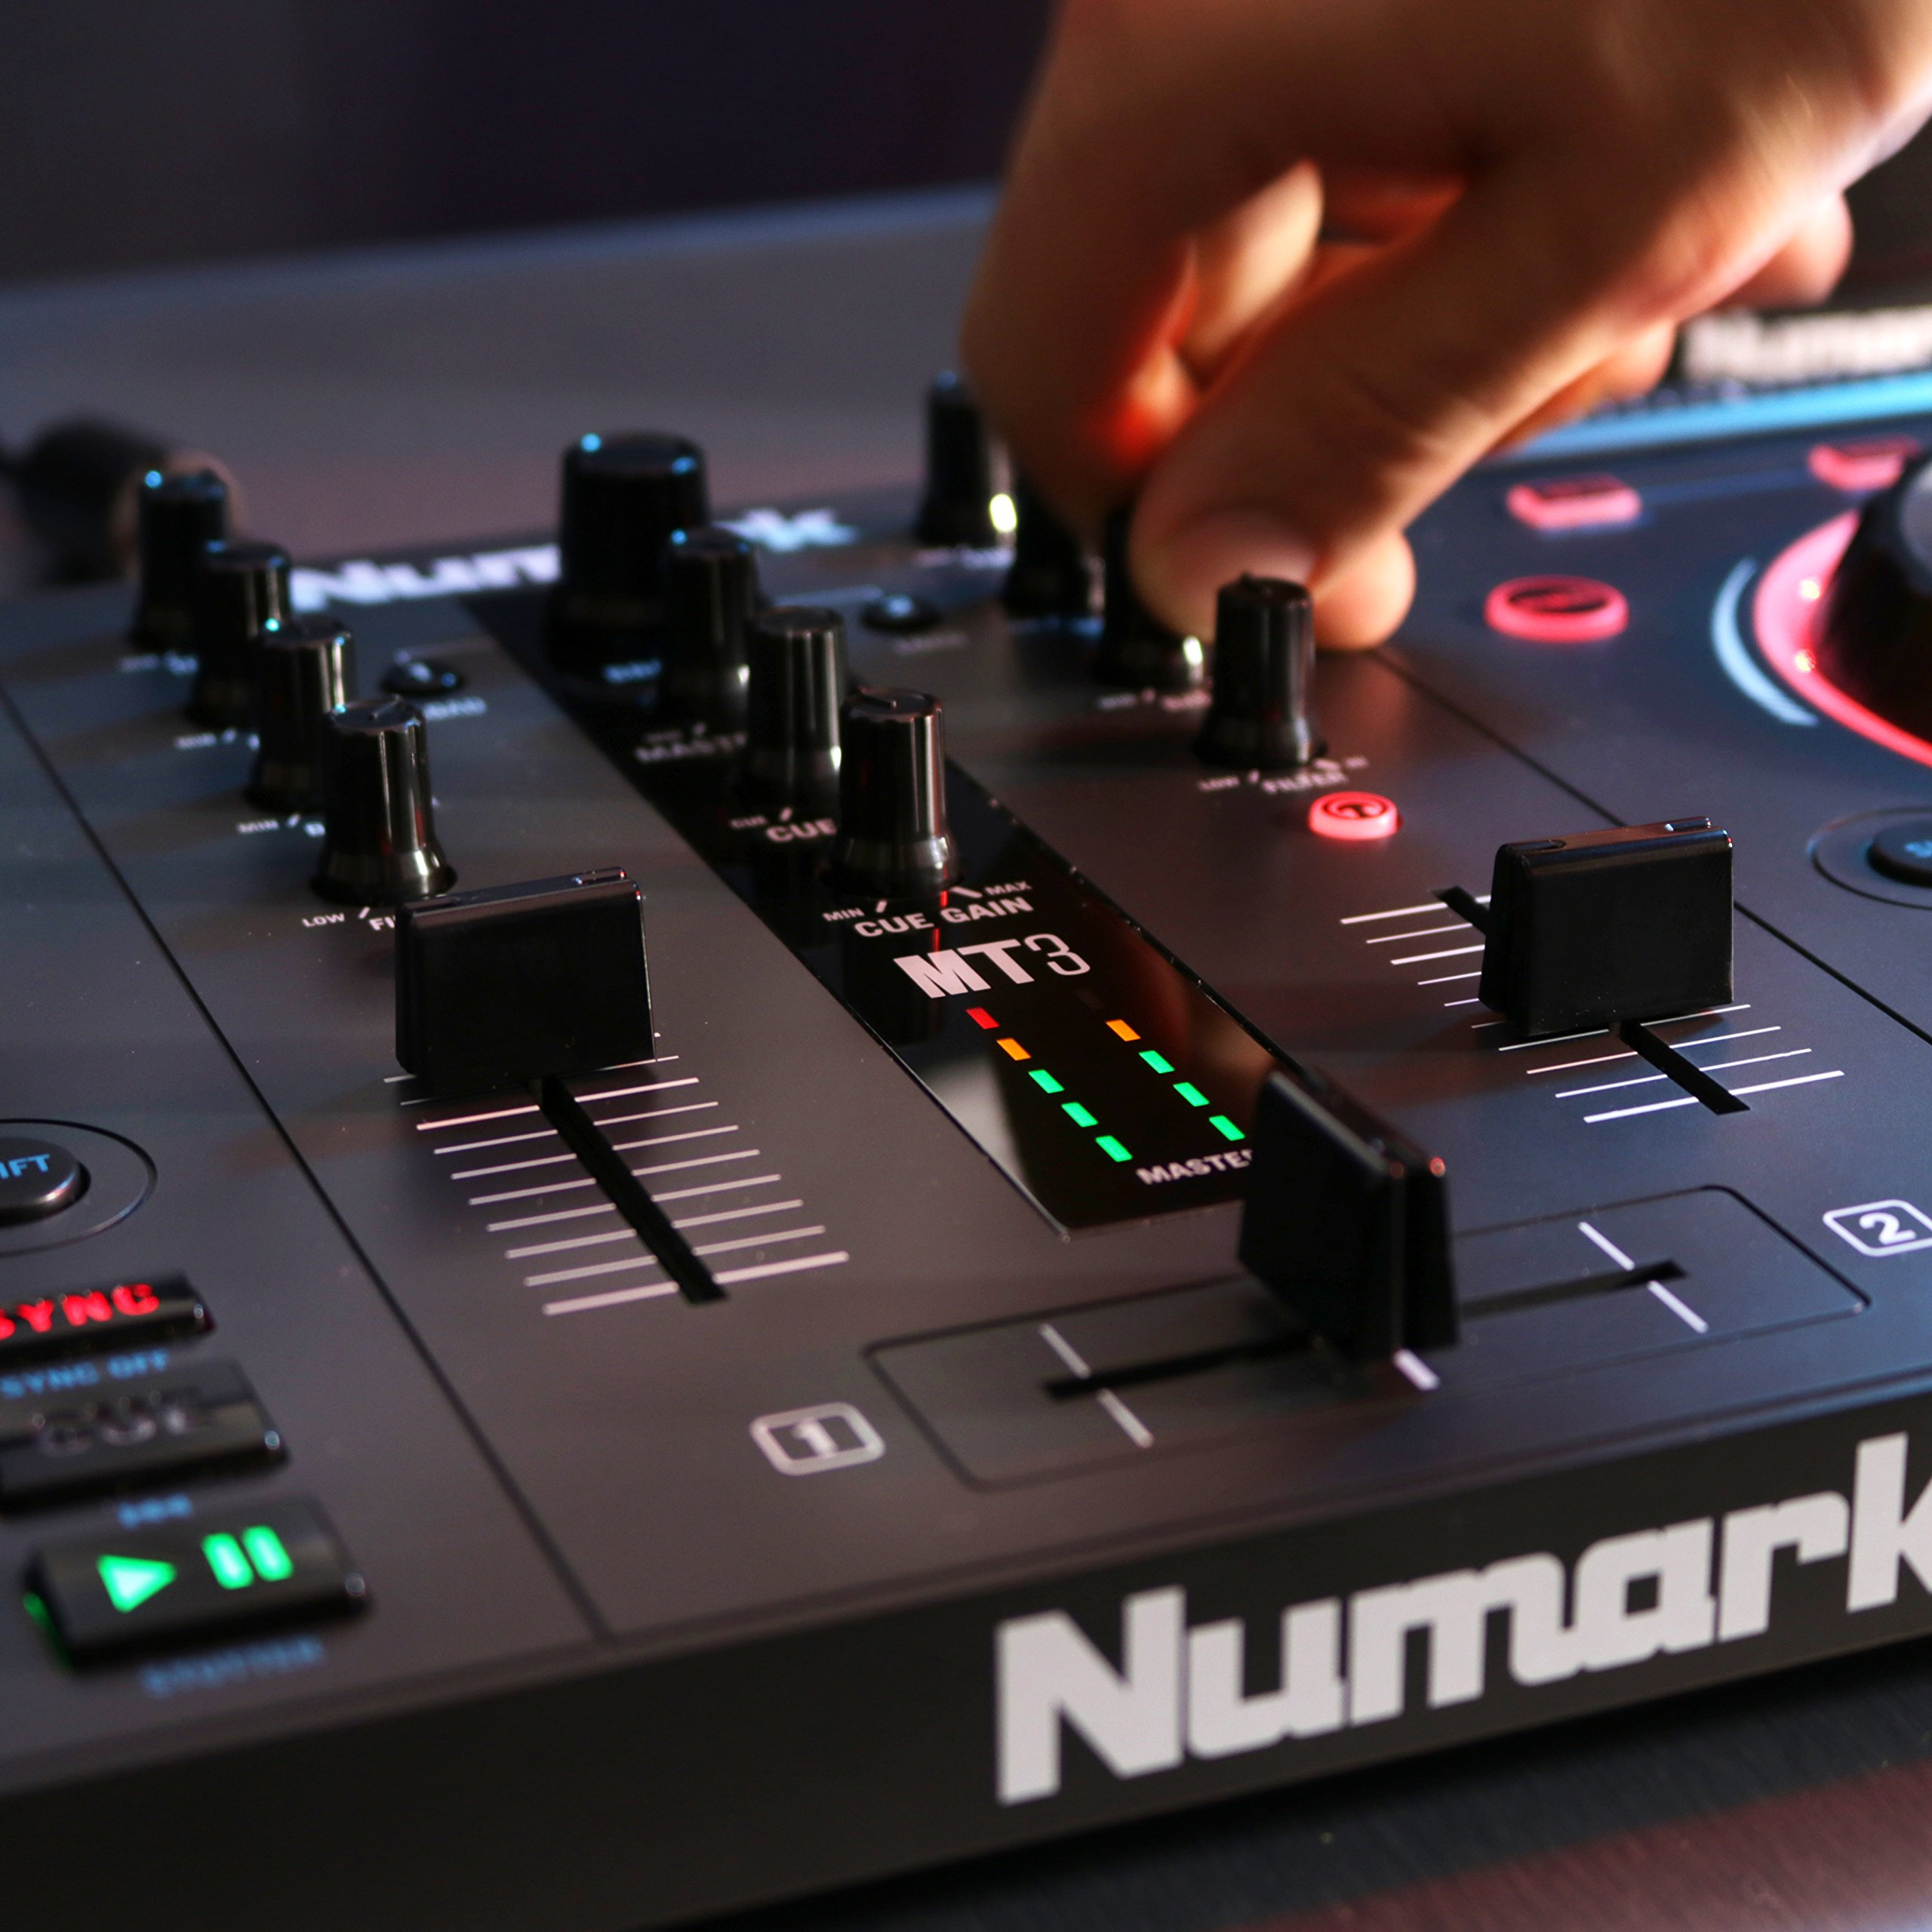 Numark Mixtrack 3 | All-in-one Controller Solution with Virtual DJ LE Software Download by Numark (Image #8)